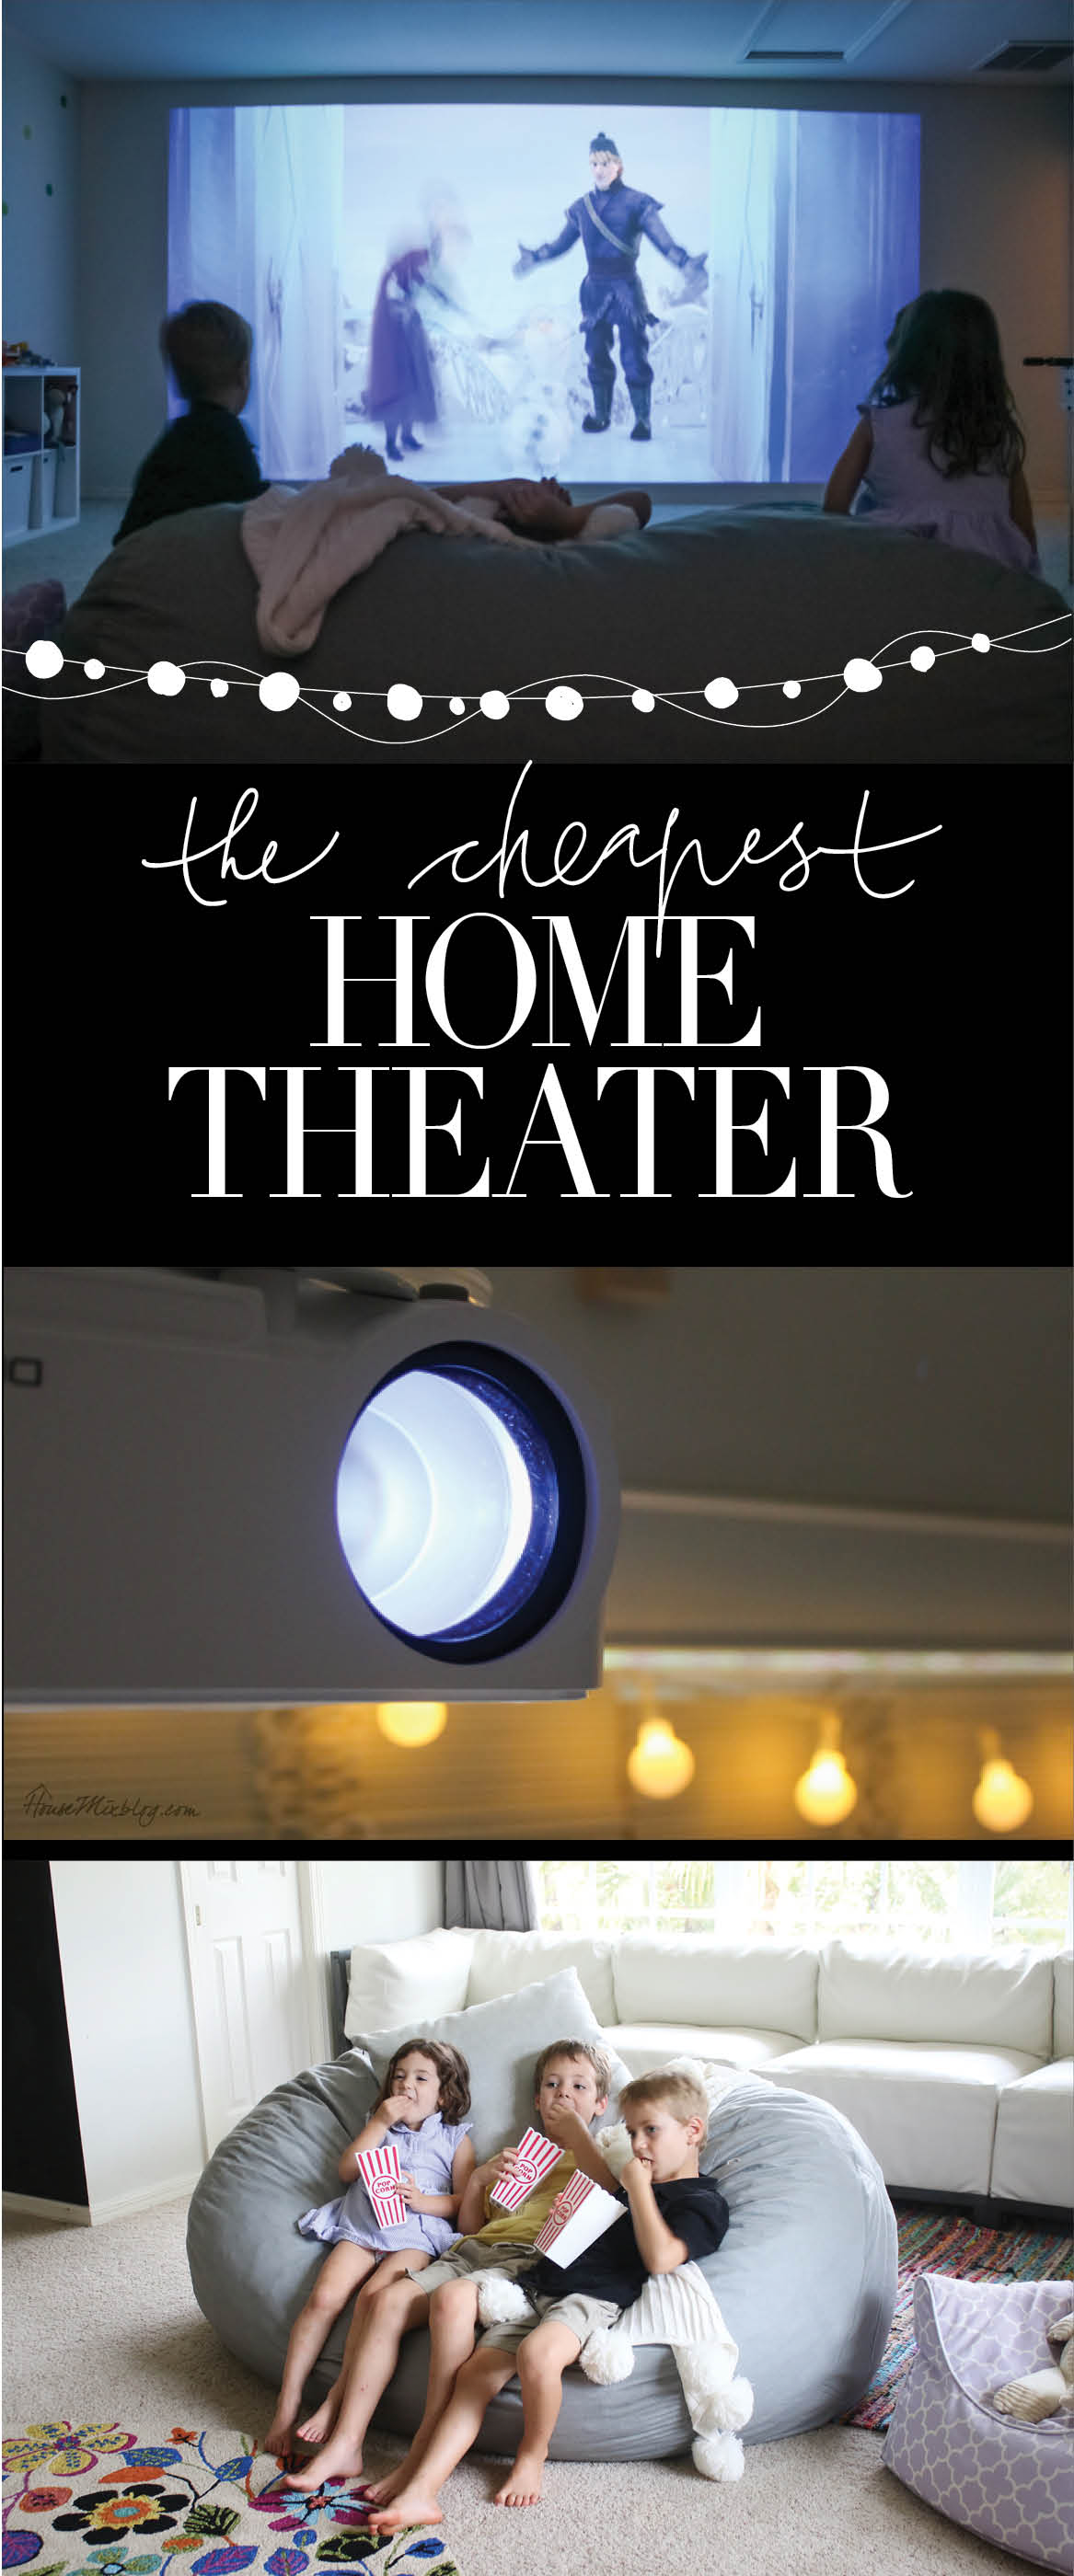 The cheapest home theater - best inexpensive projector, setup, how to play movies, surround sound, brightness, quality